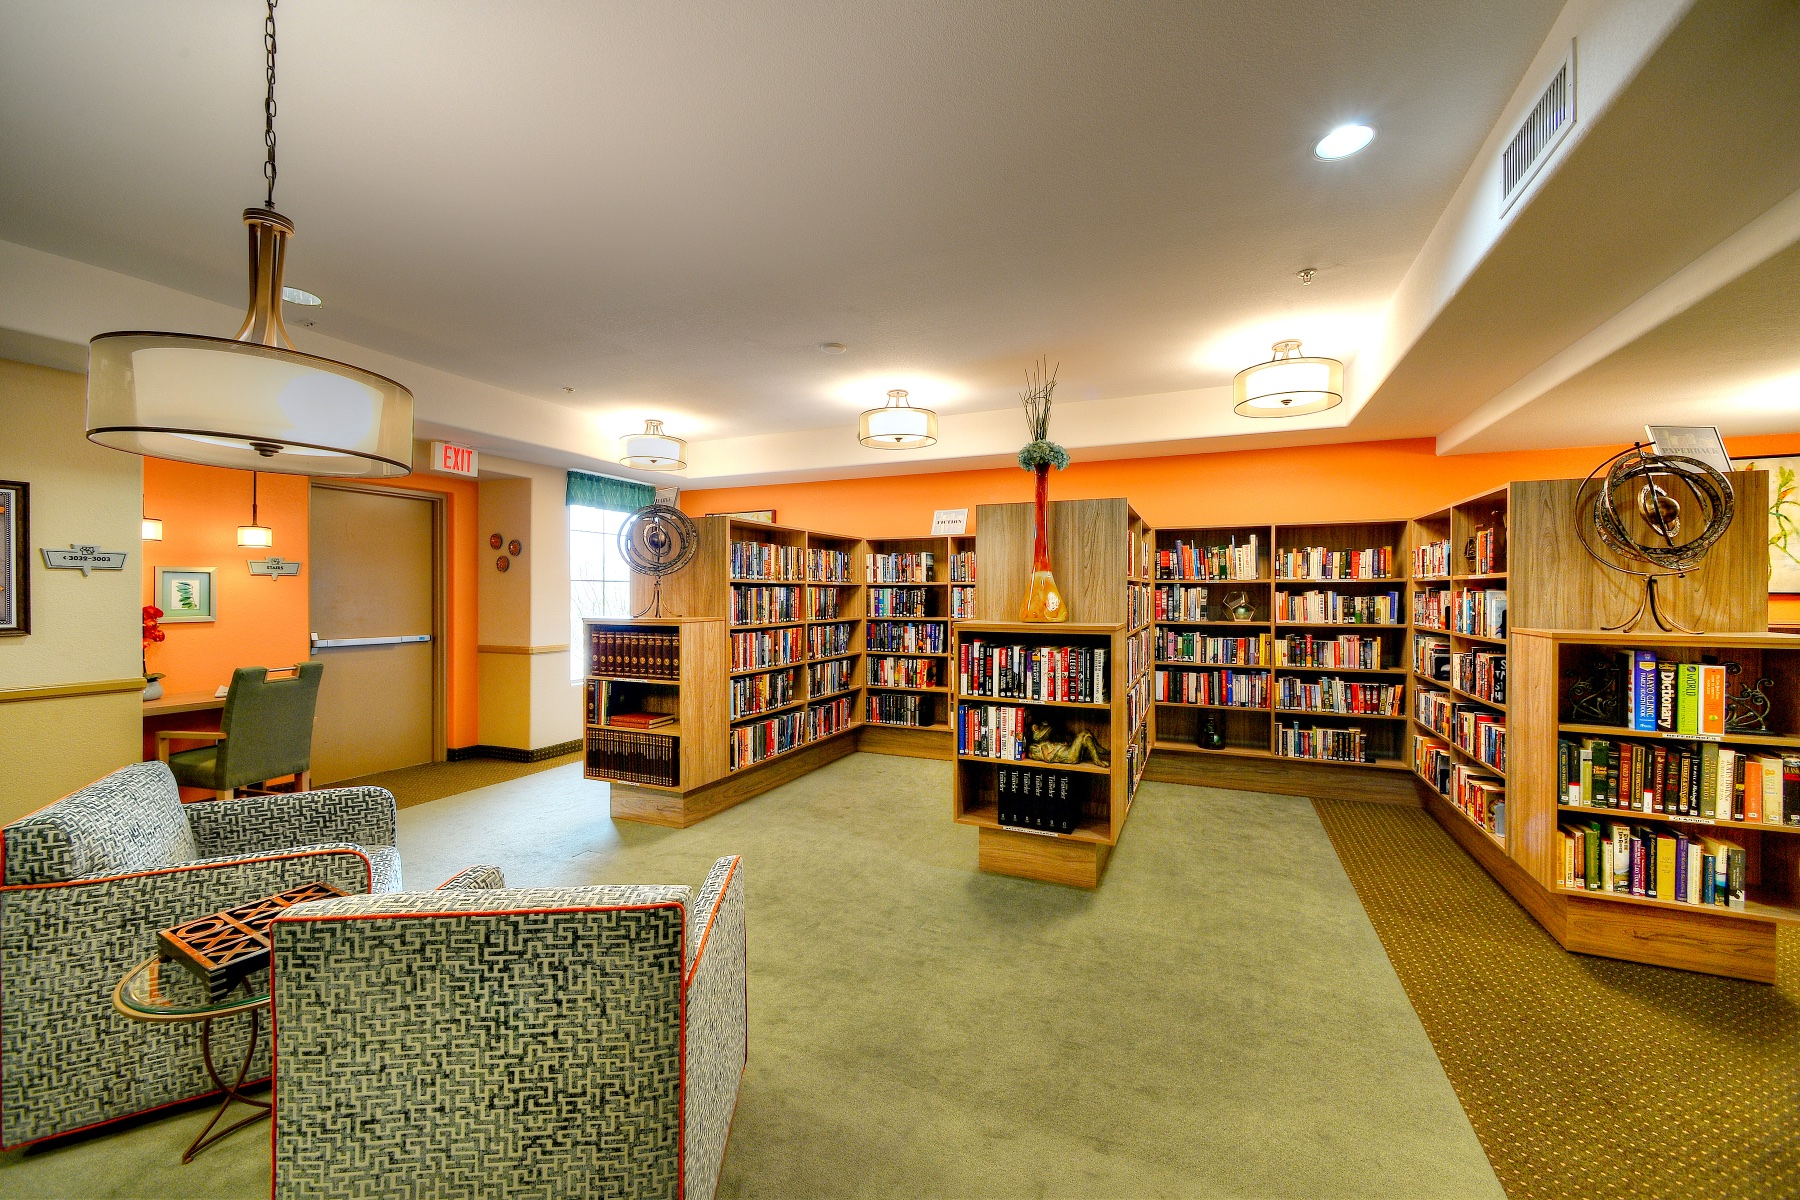 Community Libraries Help Residents Transition To Senior Living Communities By Allowing Keep And Share Their Favorite Books